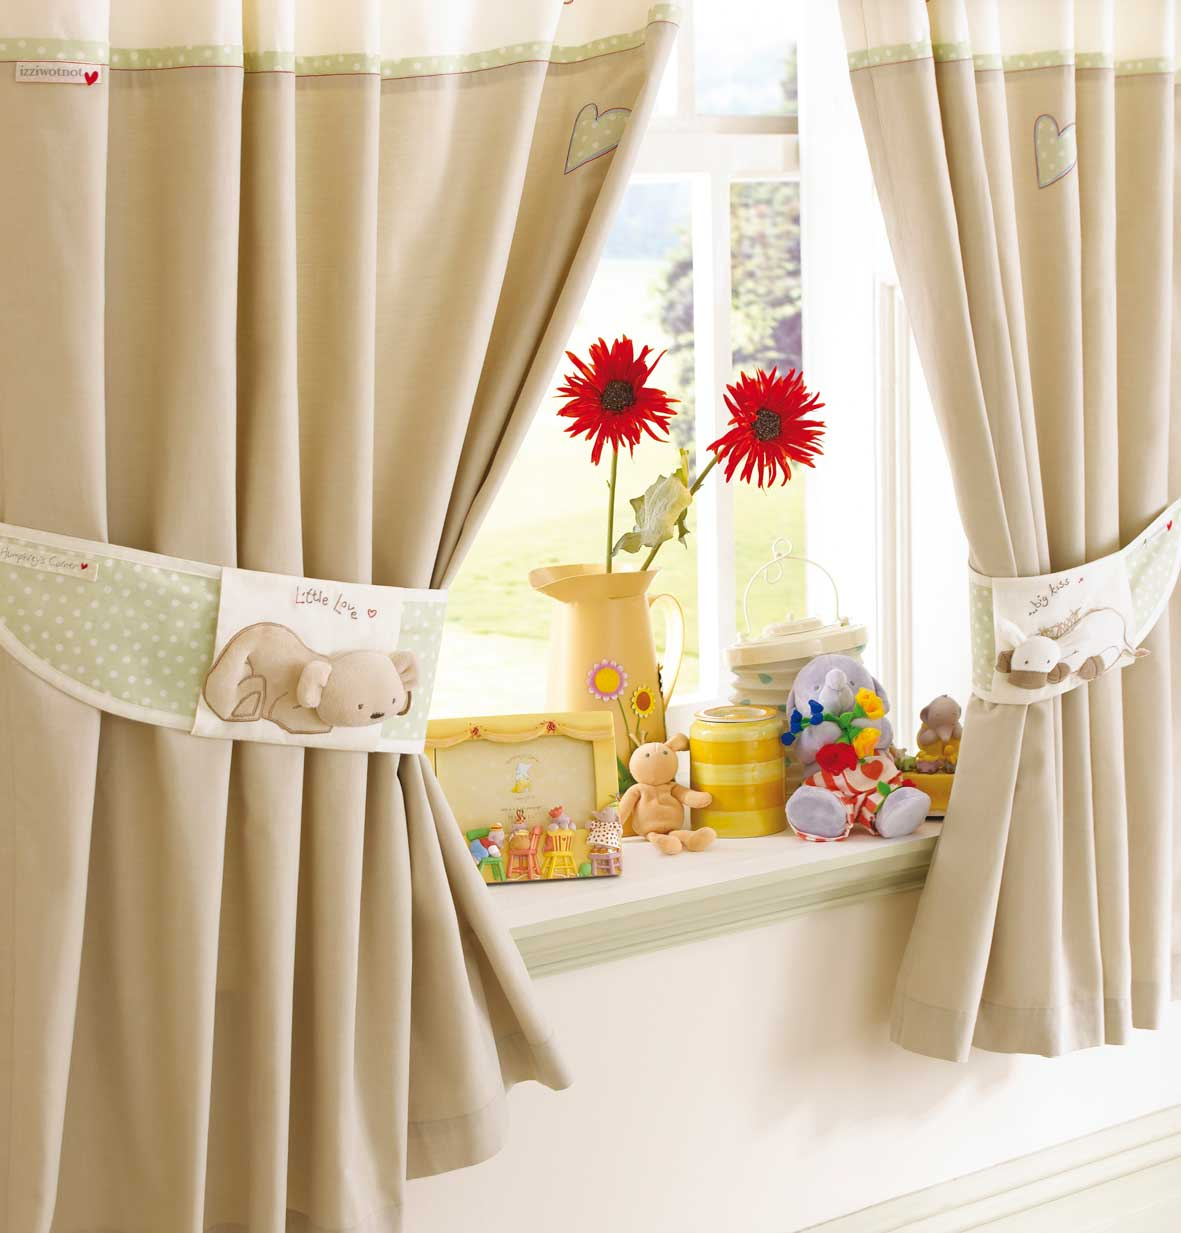 Creative window curtain design future dream house design - Windows curtains design ...